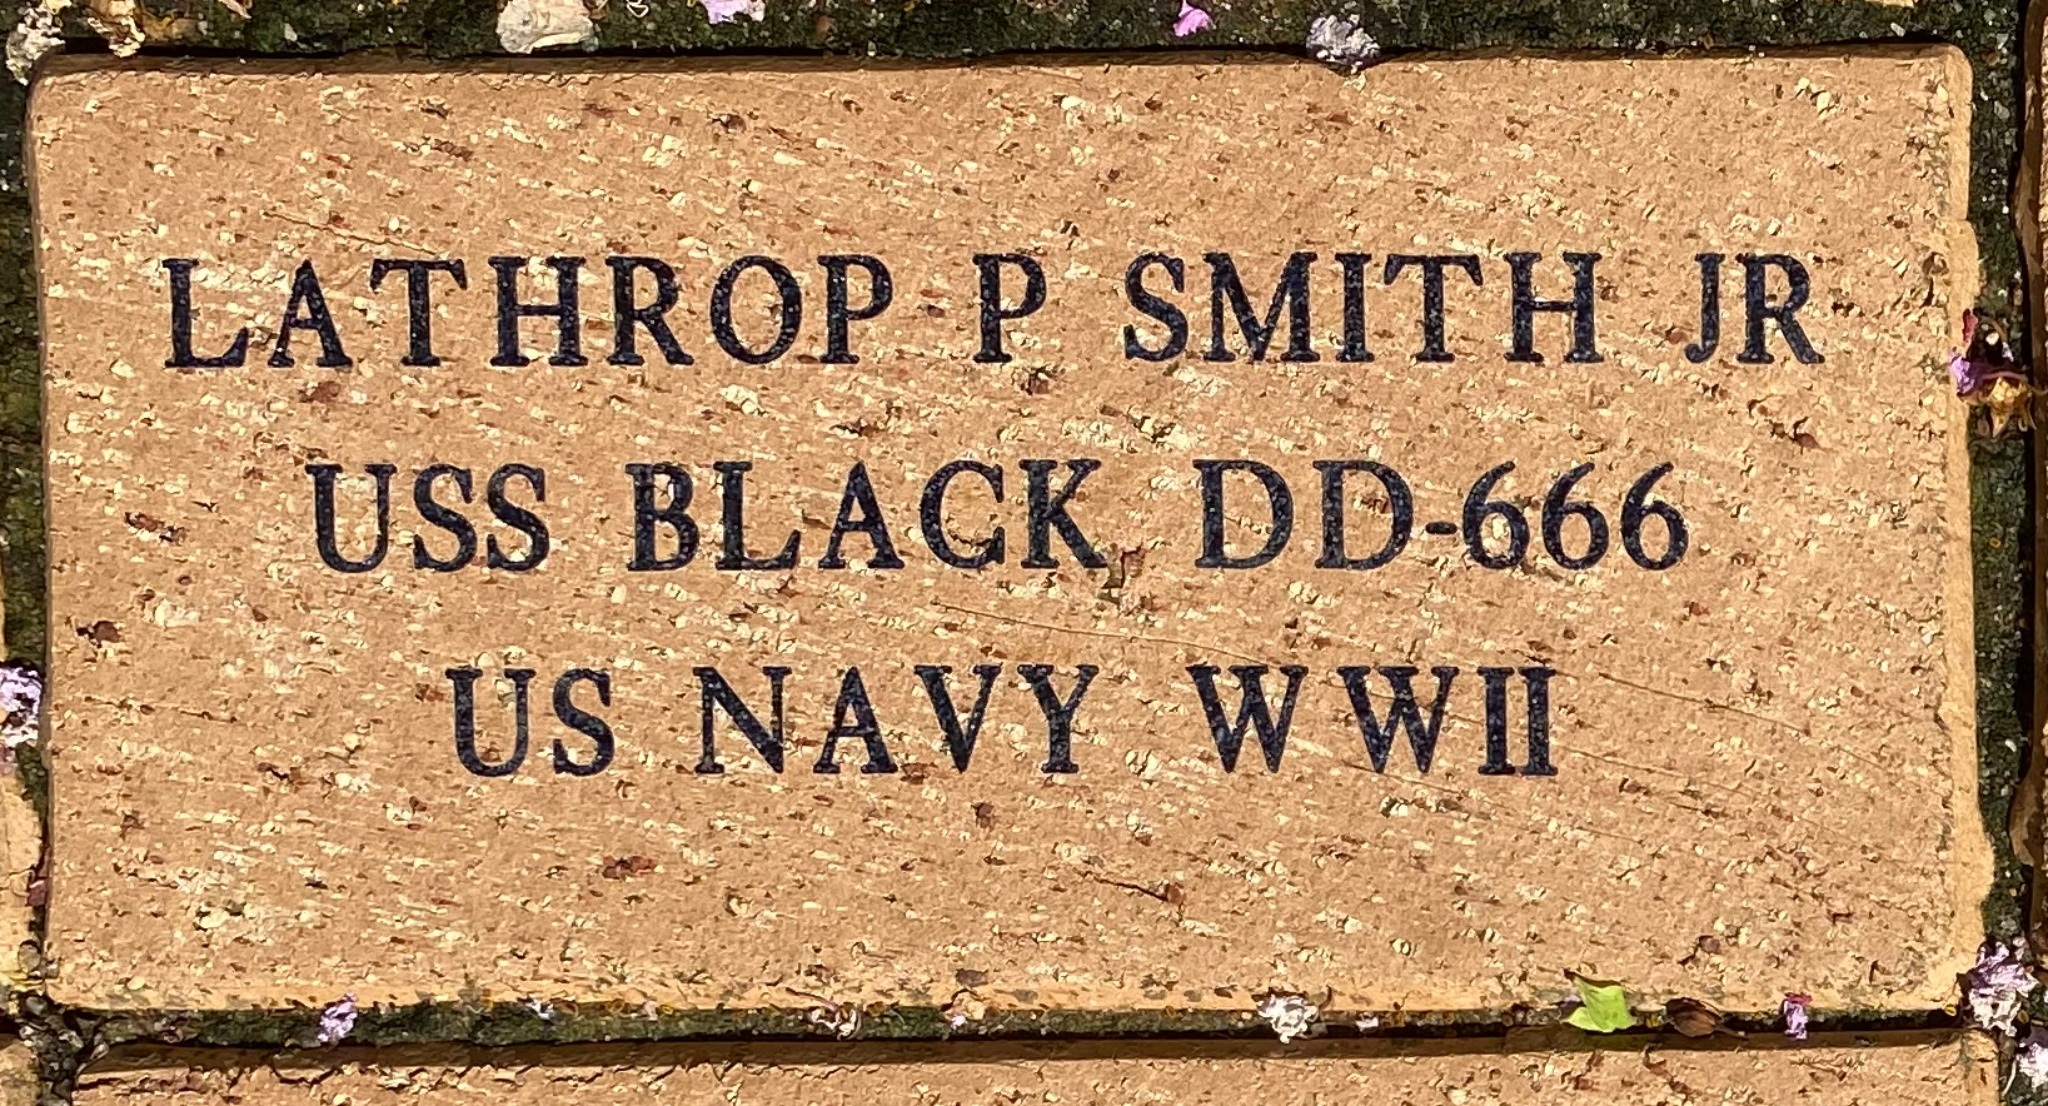 LATHROP P SMITH JR USS BLACK DD-666 US NAVY WWII